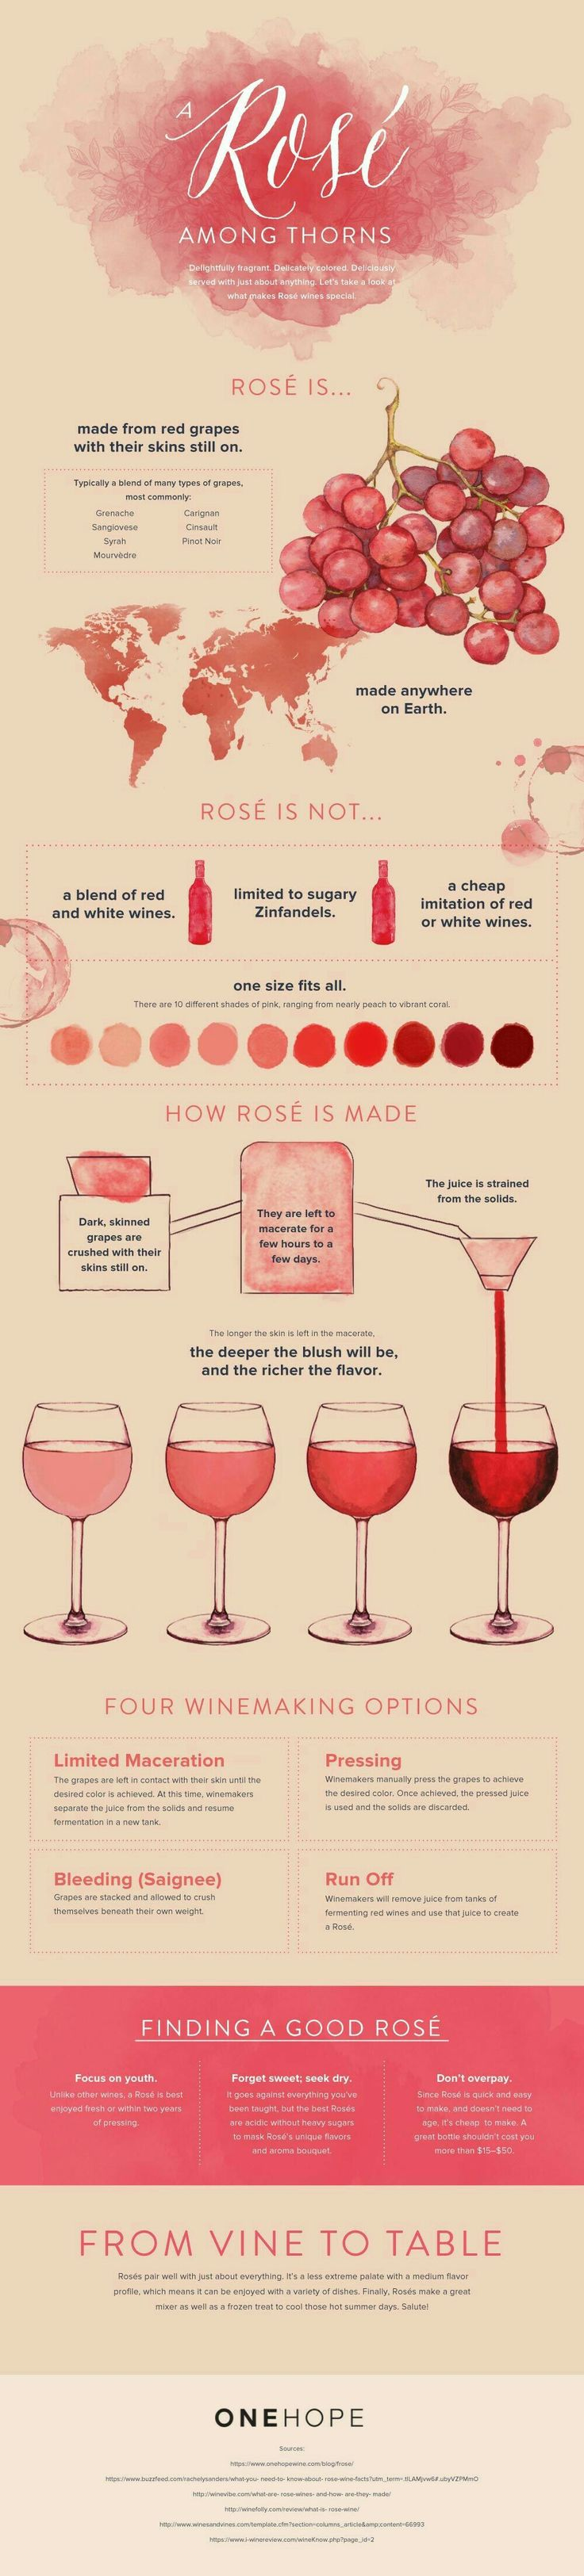 The world is looking a little more Rosé!